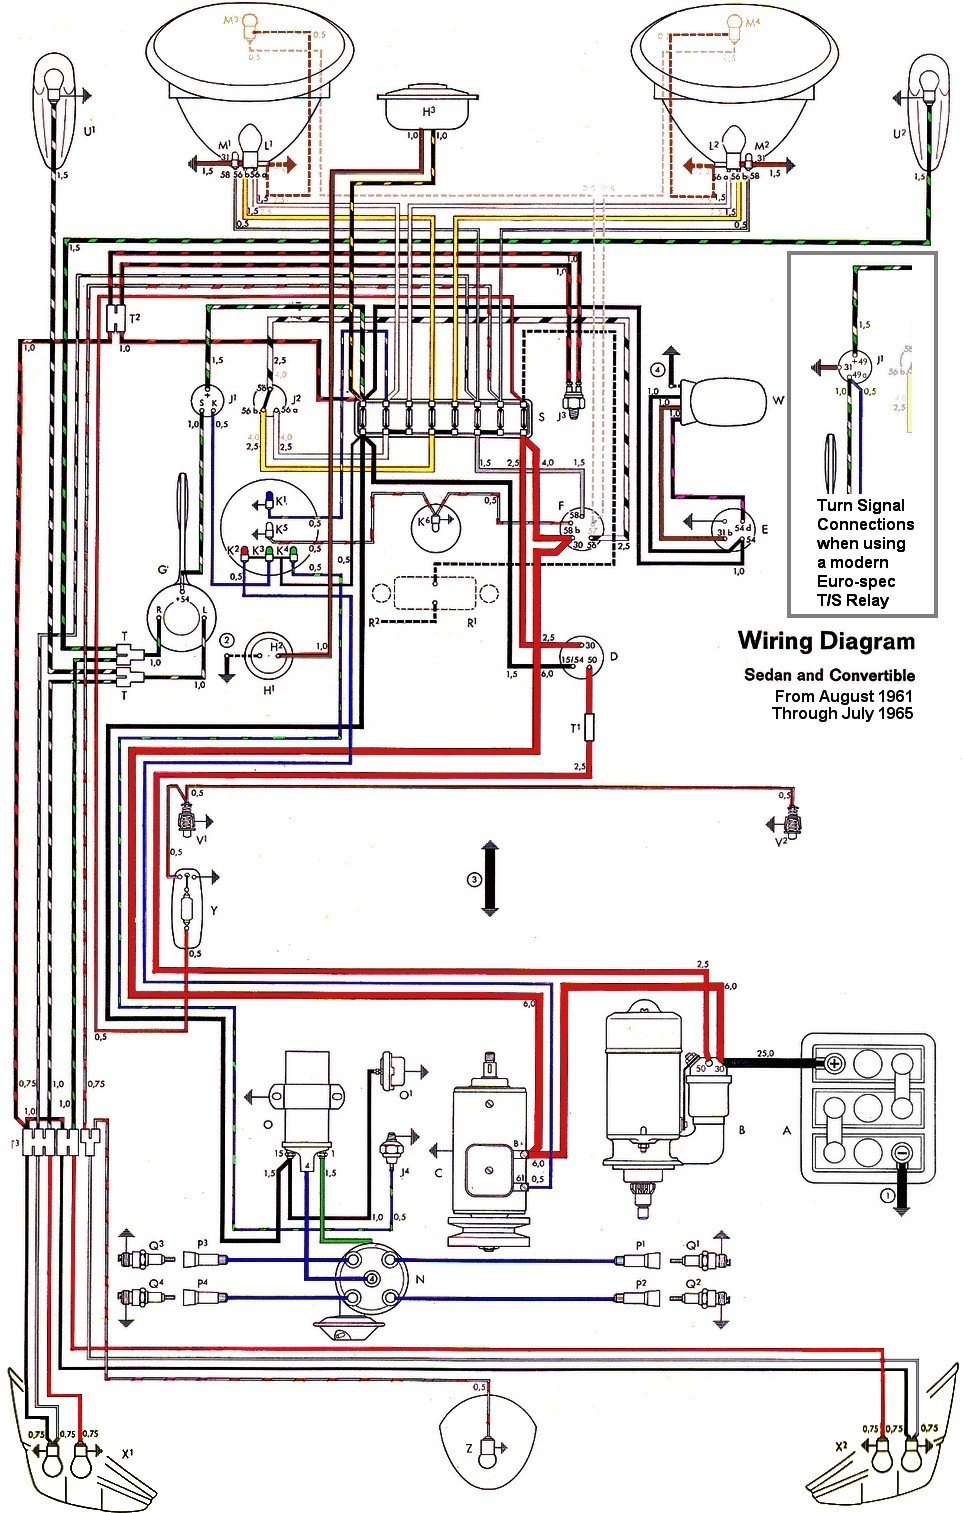 thesamba com type 1 wiring diagrams rh thesamba com 1970 vw beetle wiring schematic 1972 vw beetle wiring schematic